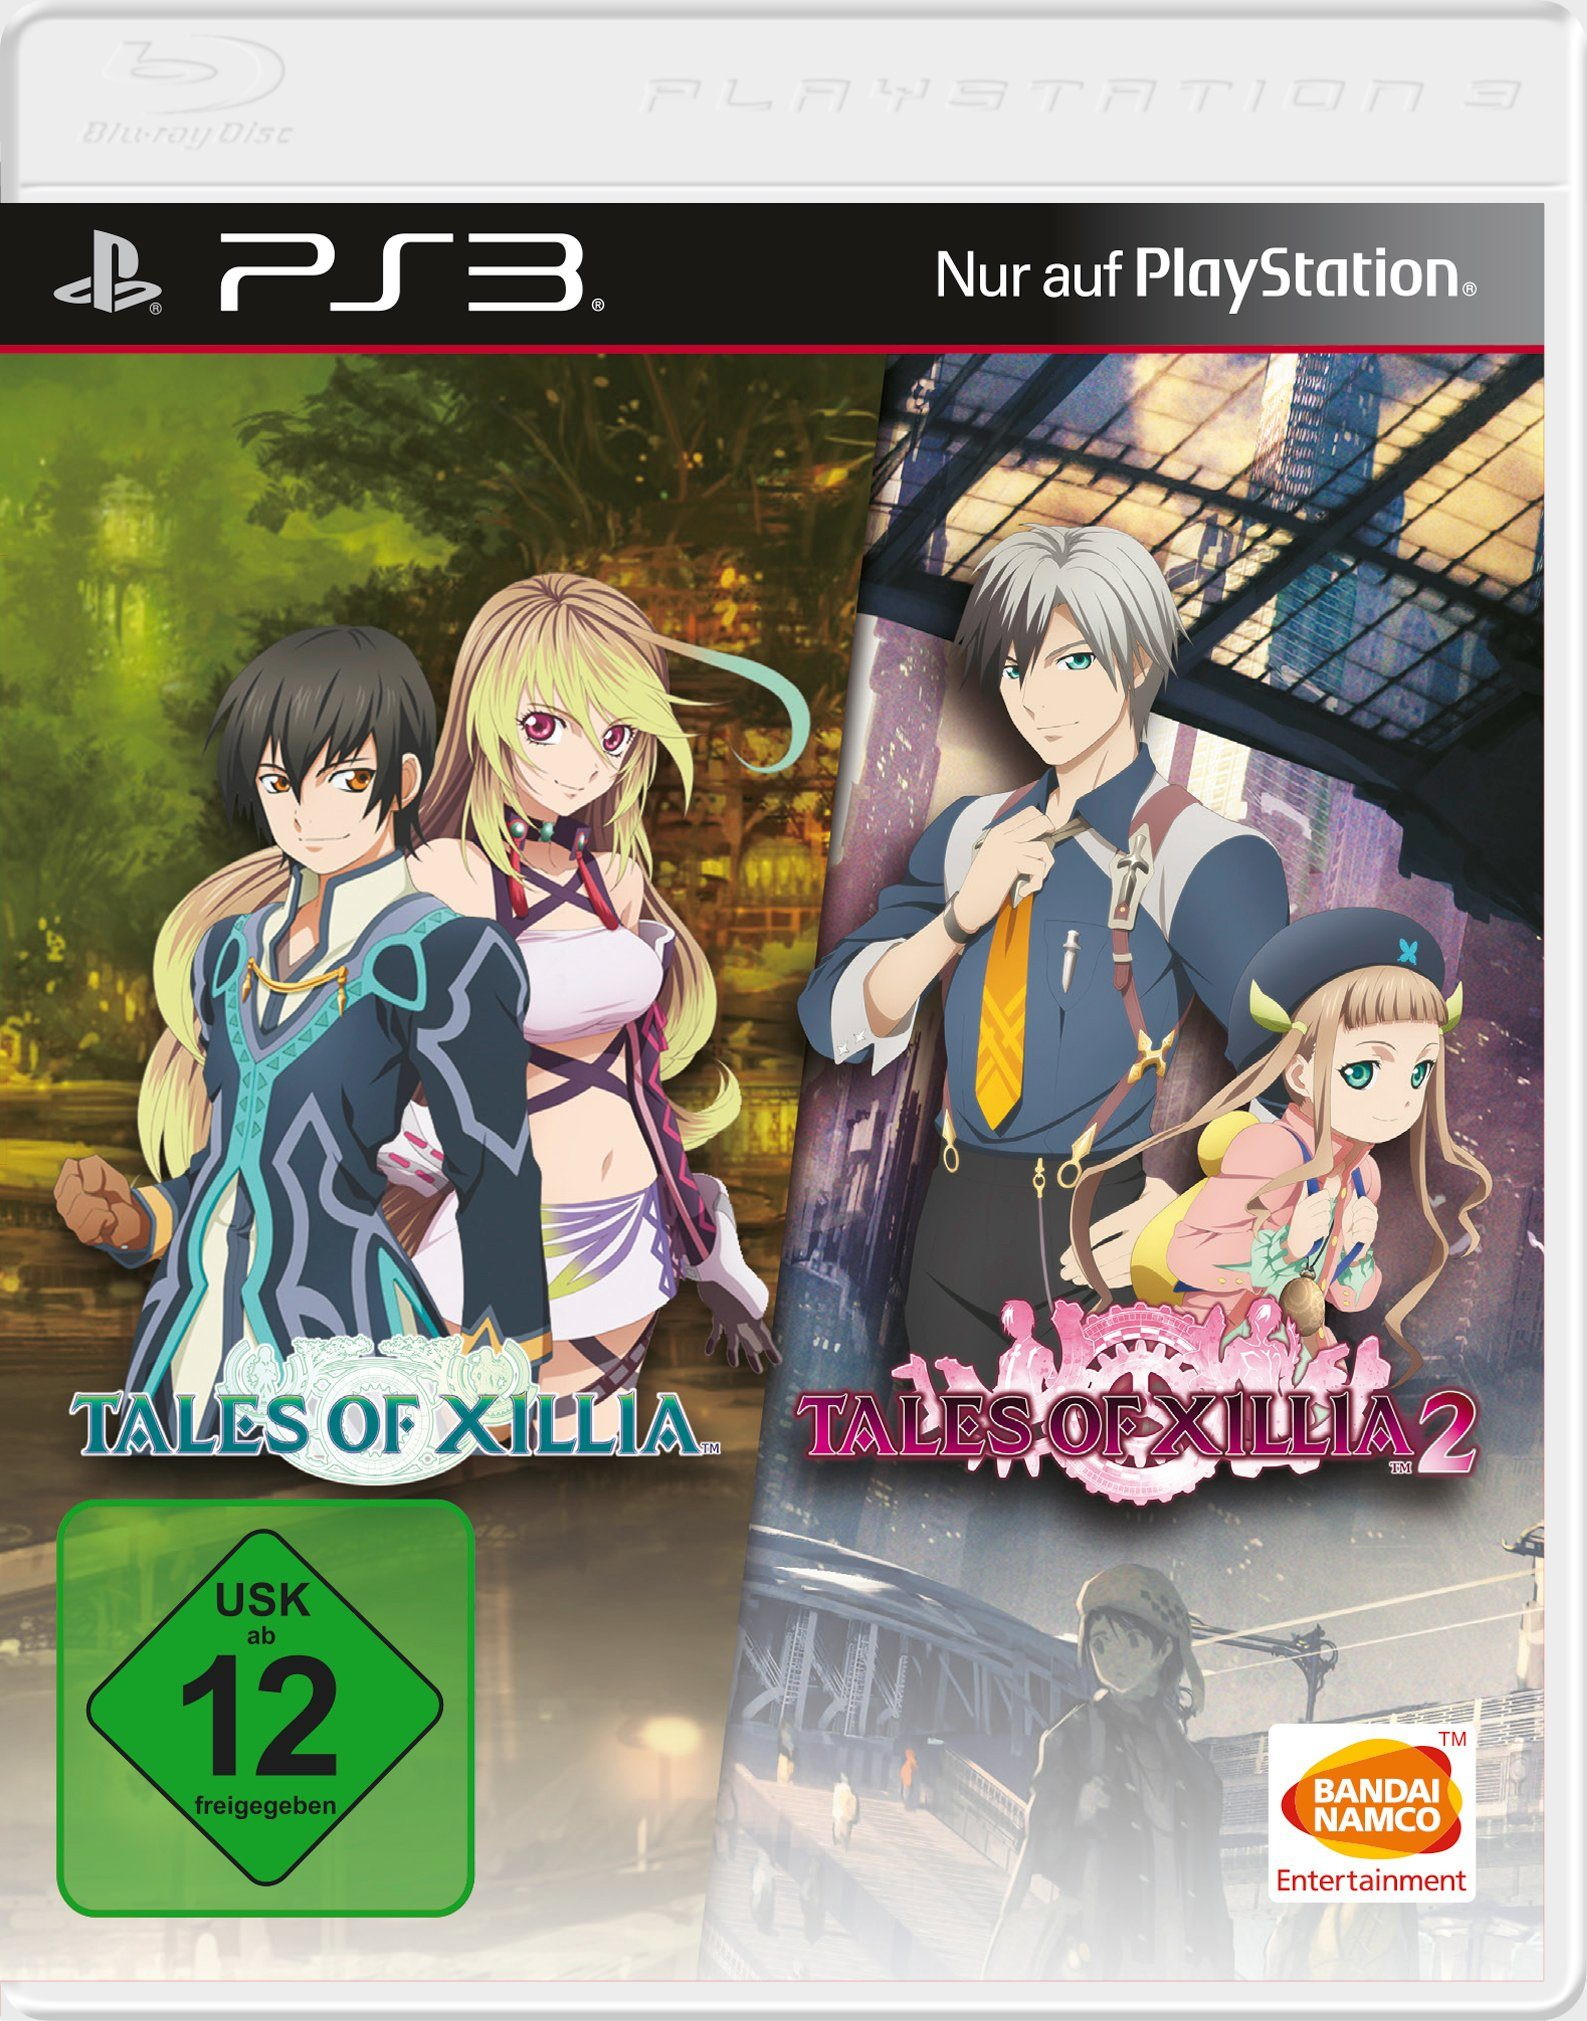 BANDAI NAMCO Software Pyramide - Playstation 3 Spiel »Tales of Xillia 1+2«